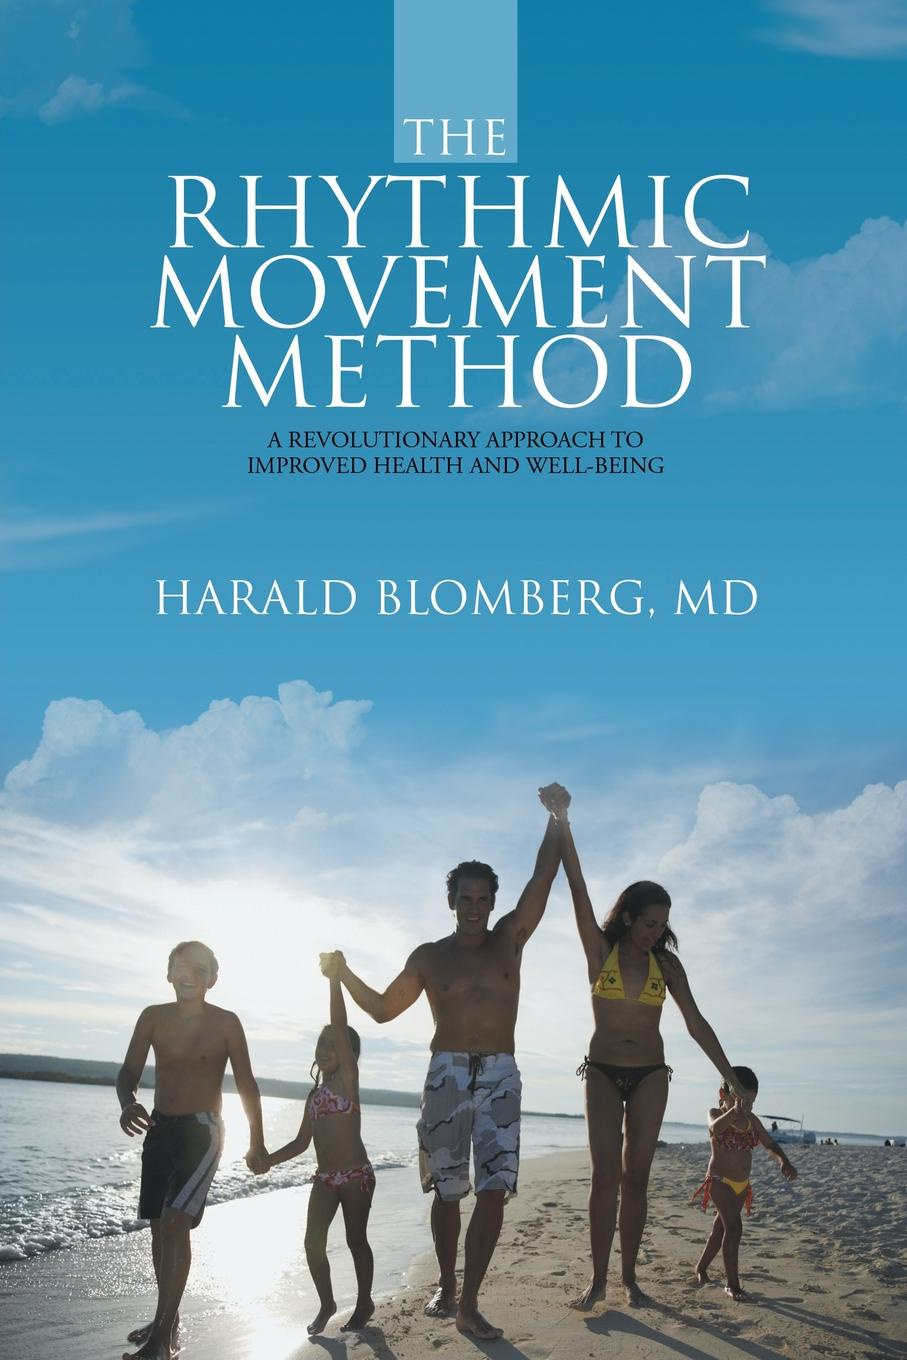 MD Harald Blomberg The Rhythmic Movement Method. A Revolutionary Approach to Improved Health and Well-Being hall deborah a non parkinsonian movement disorders